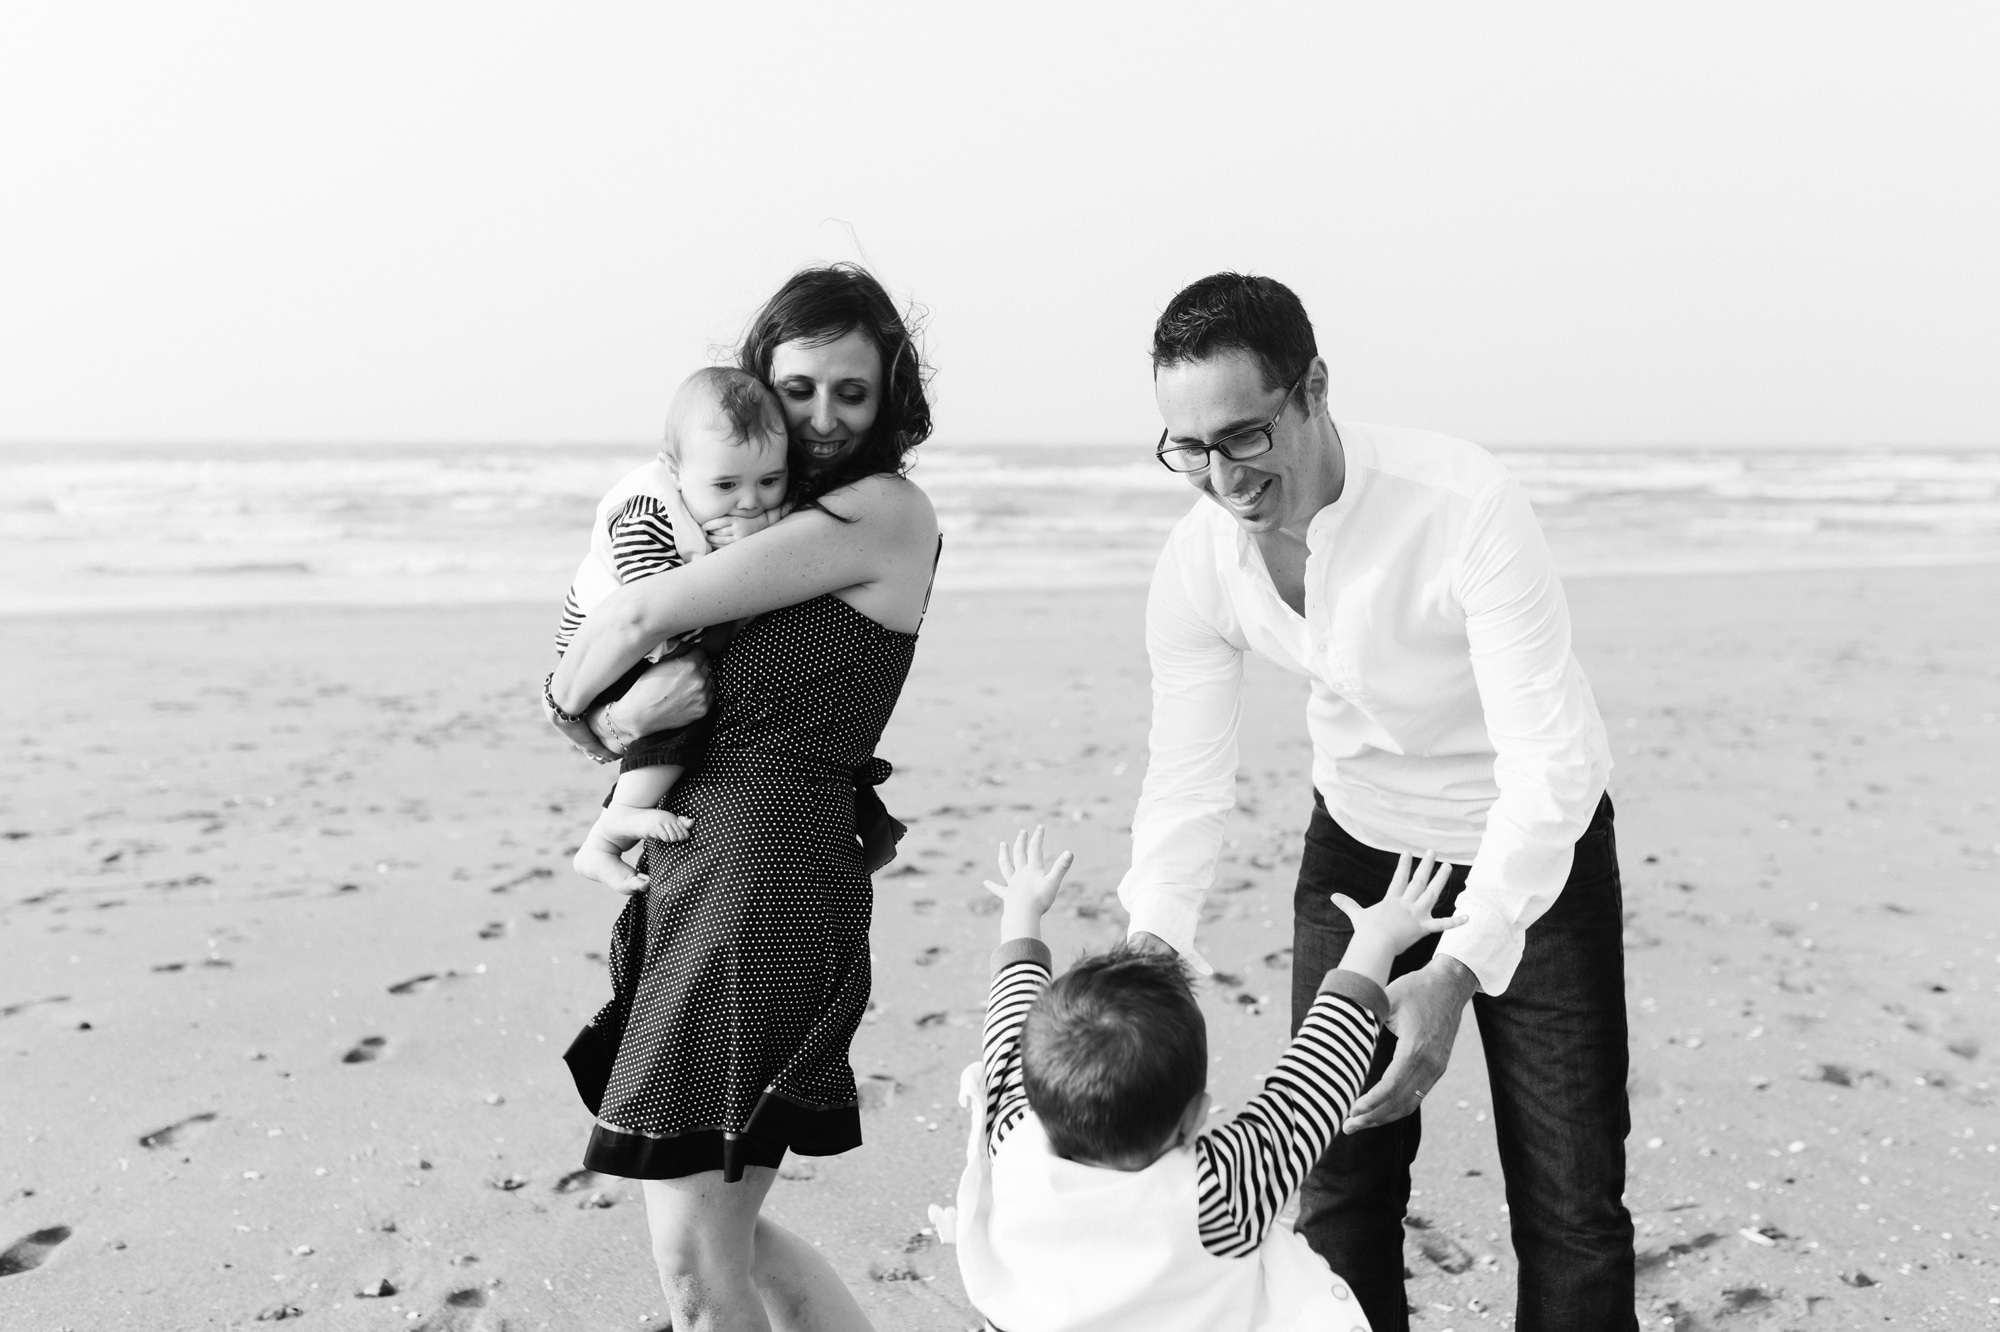 séance famille cabourg basse normandie photographe shooting lifestyle-11